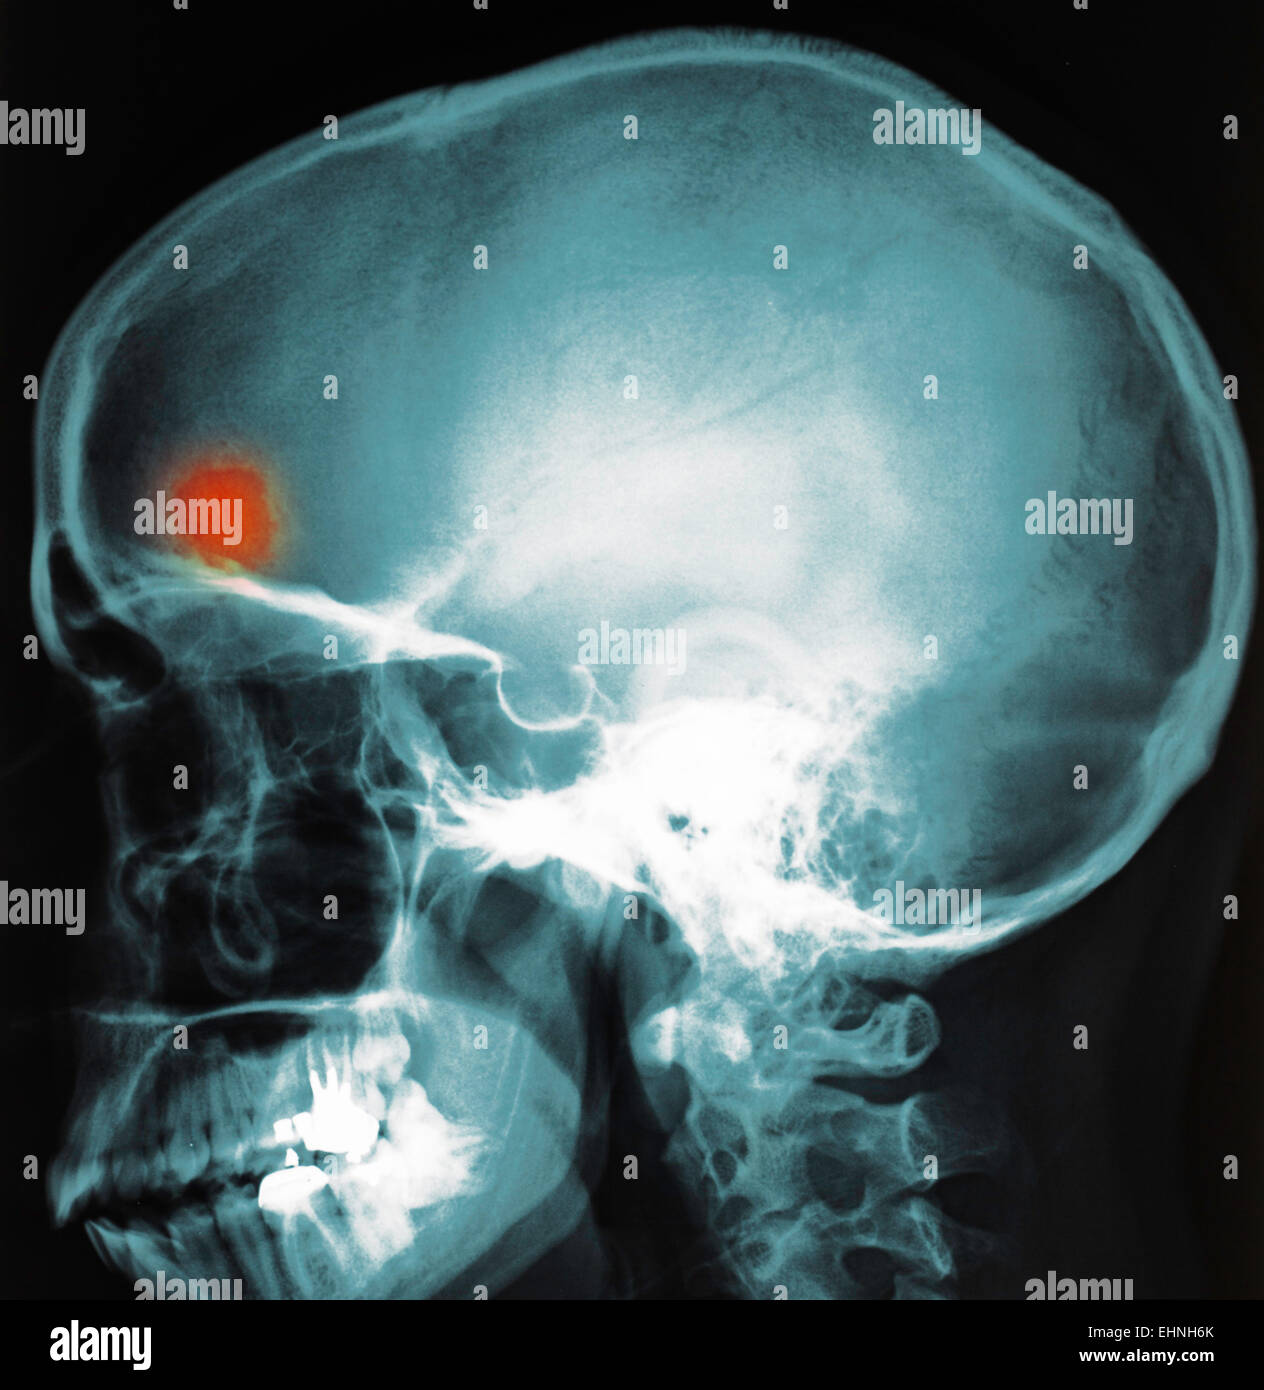 X-ray of brain abscess. - Stock Image